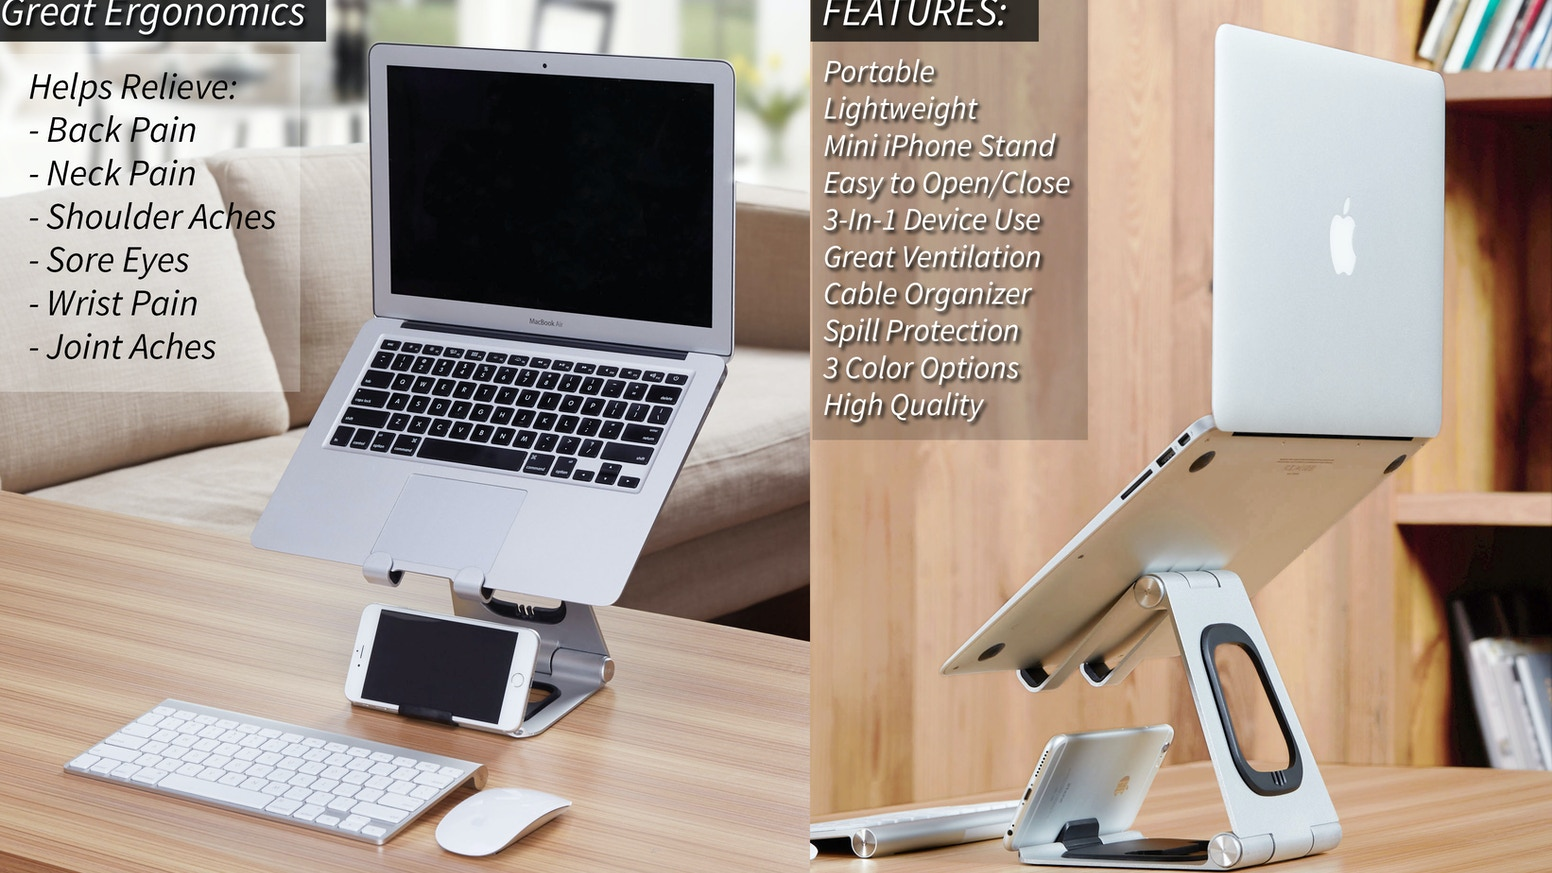 The World's Best Laptop Stand. Lightweight, Portable Stand with Lower Phone Display, Laptop Ventilation, Cable Organizer, and more...